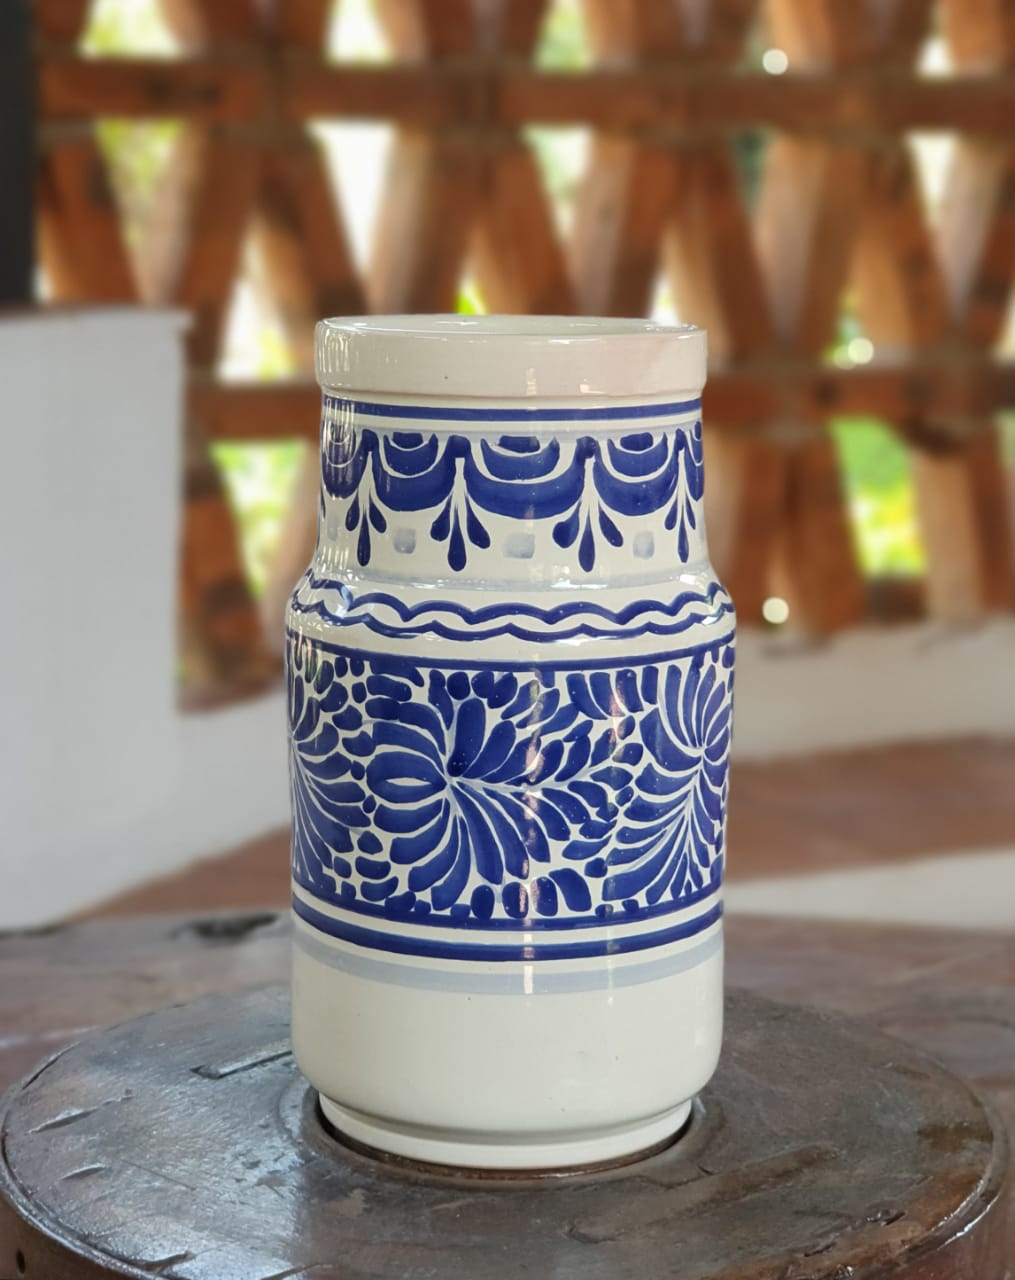 Decorative Flower Vase Blue and White